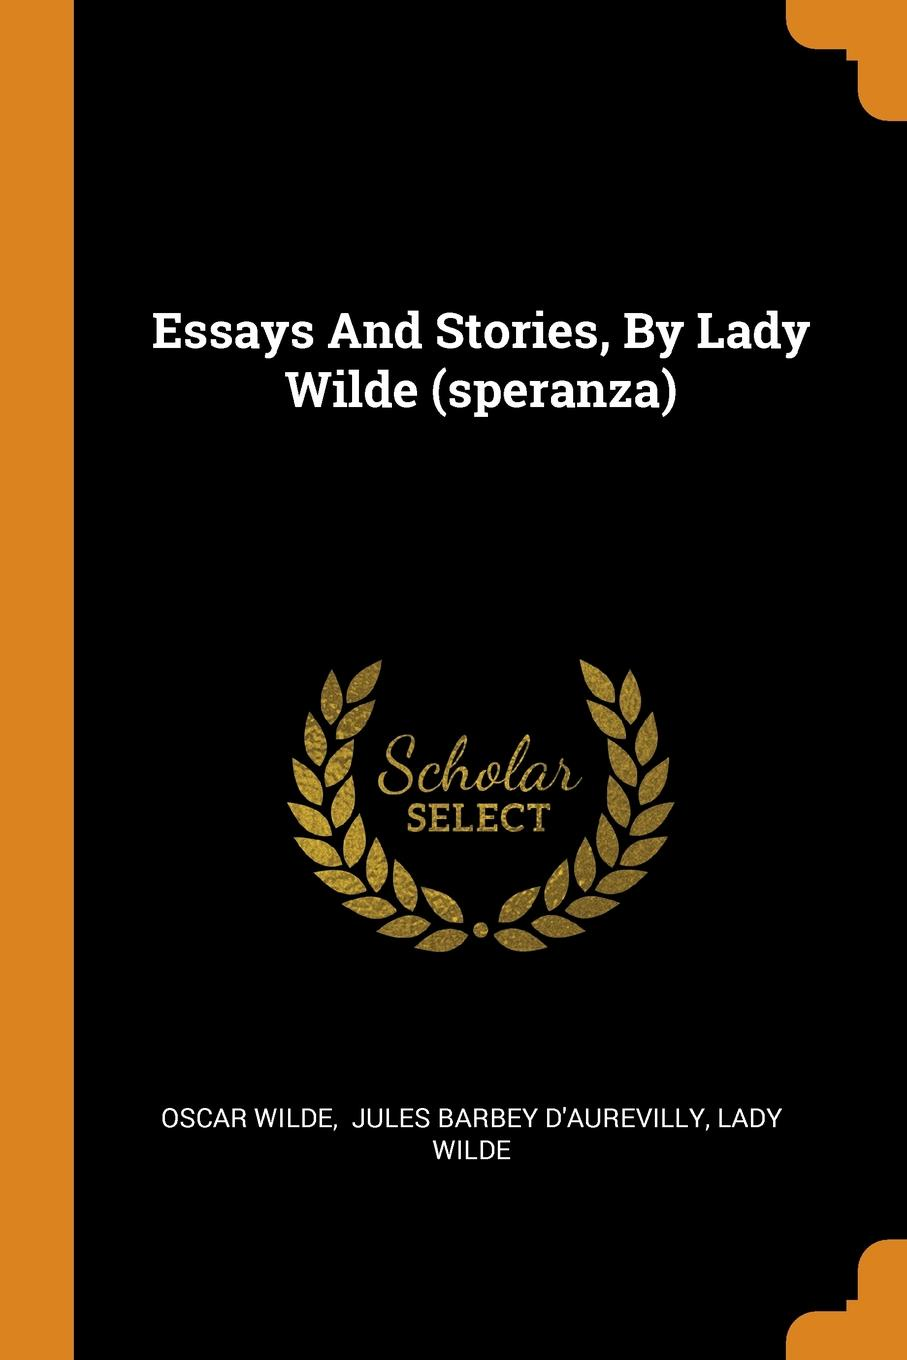 Oscar Wilde, Lady Wilde Essays And Stories, By Lady Wilde (speranza) oscar wilde the ballad of reading gaol a poetry